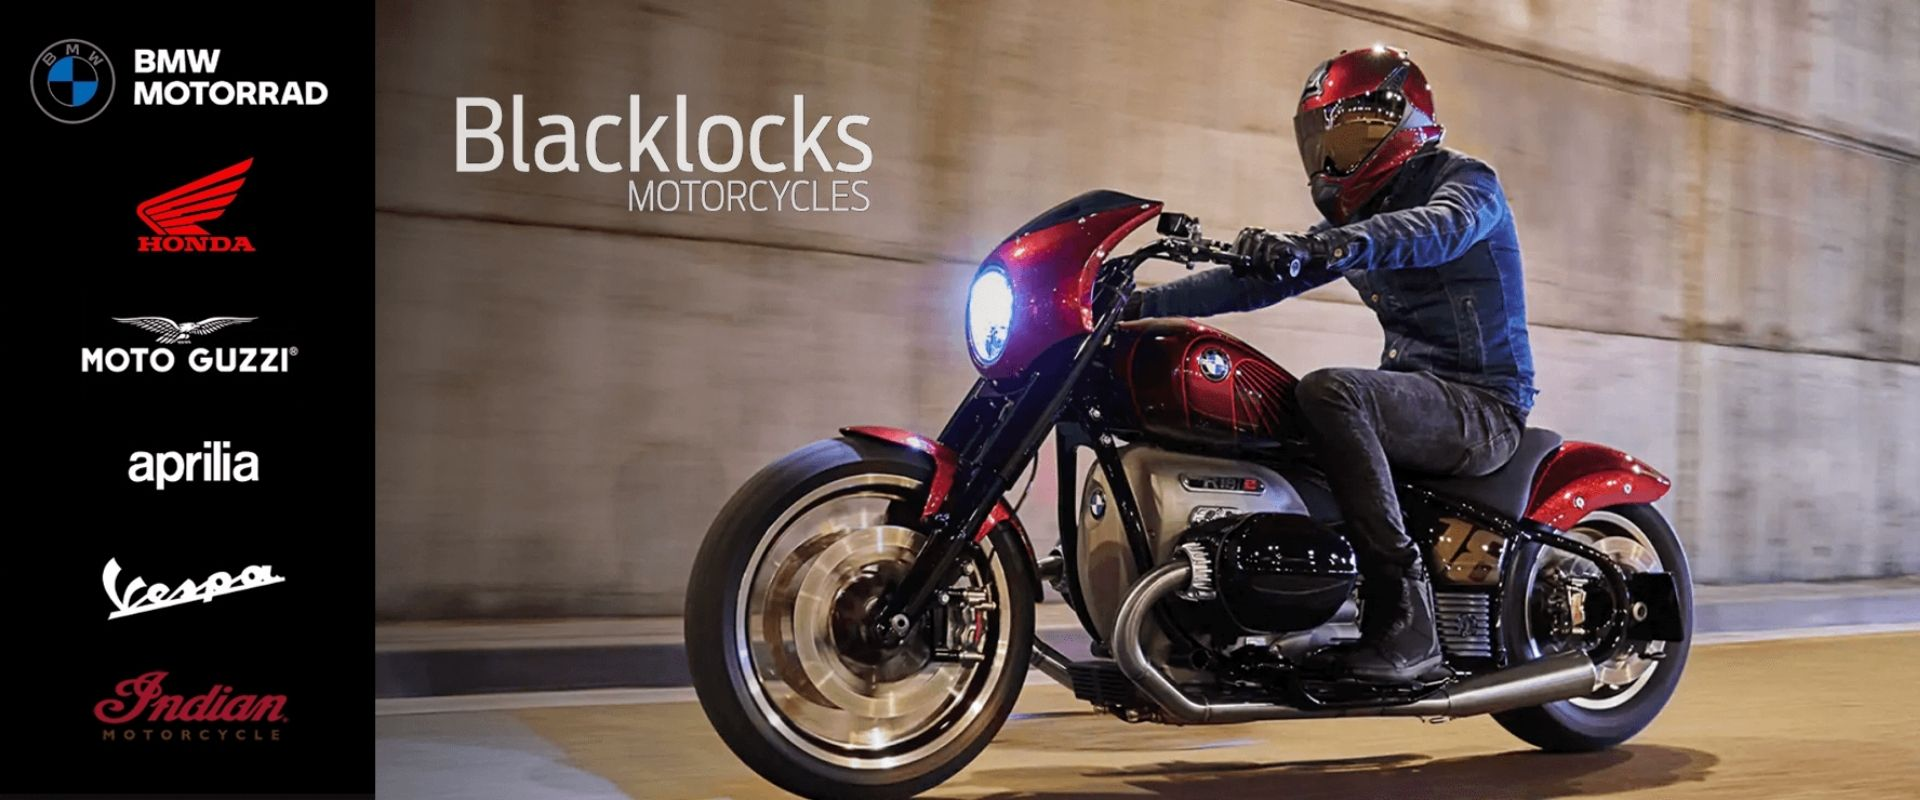 Visit Blacklocks Motorcycles